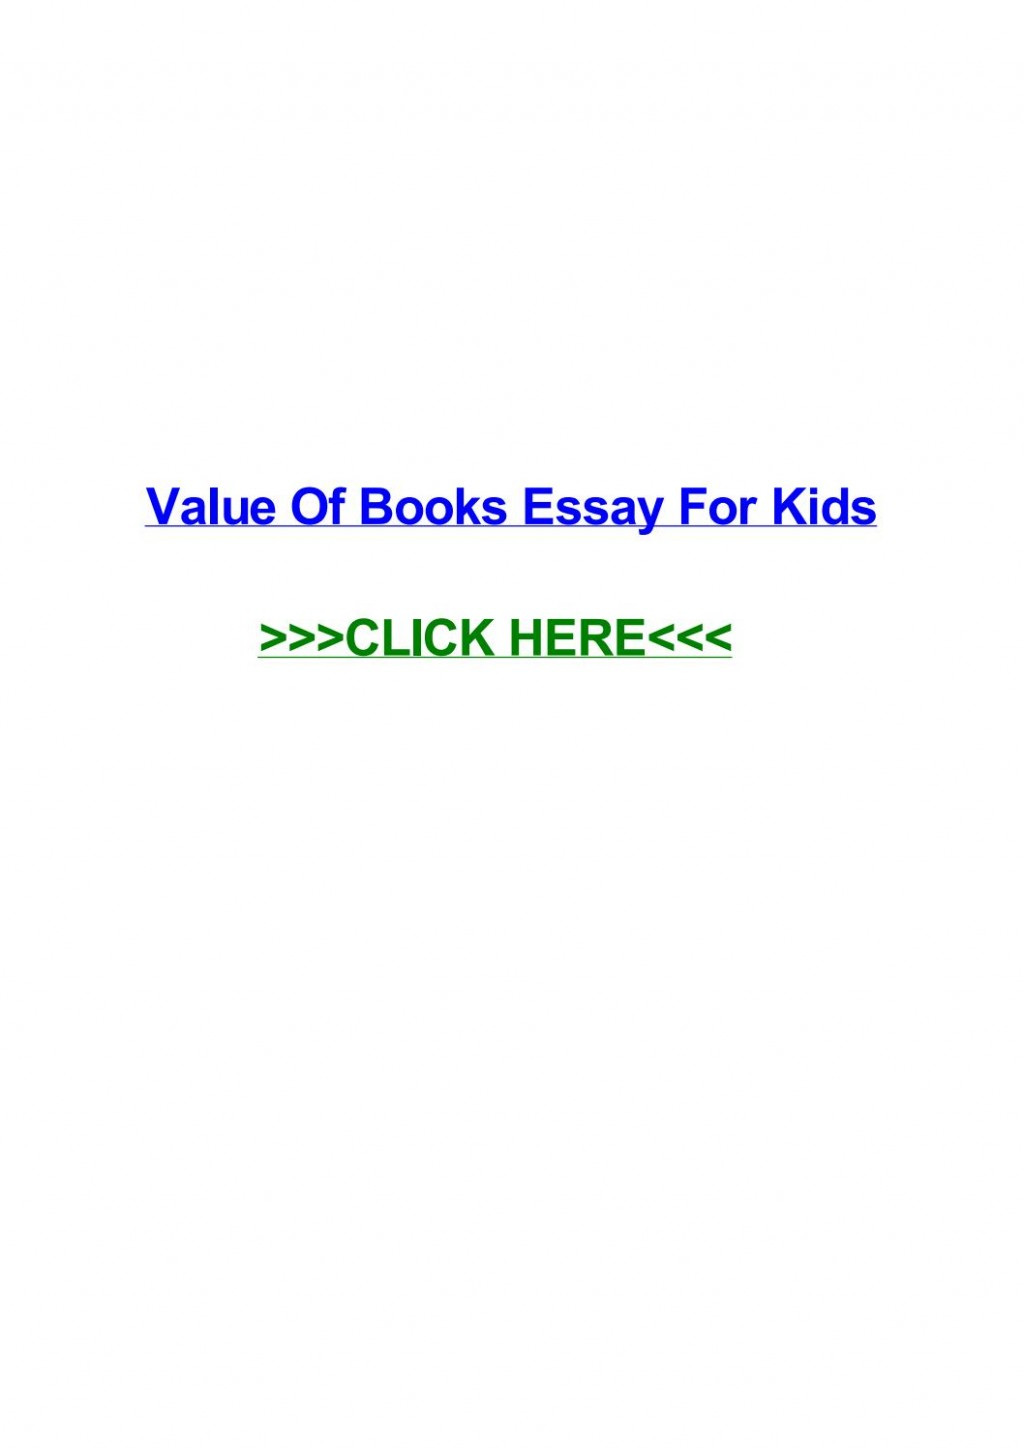 005 Page 1 Value Of Books Essay For Kids Unique Large